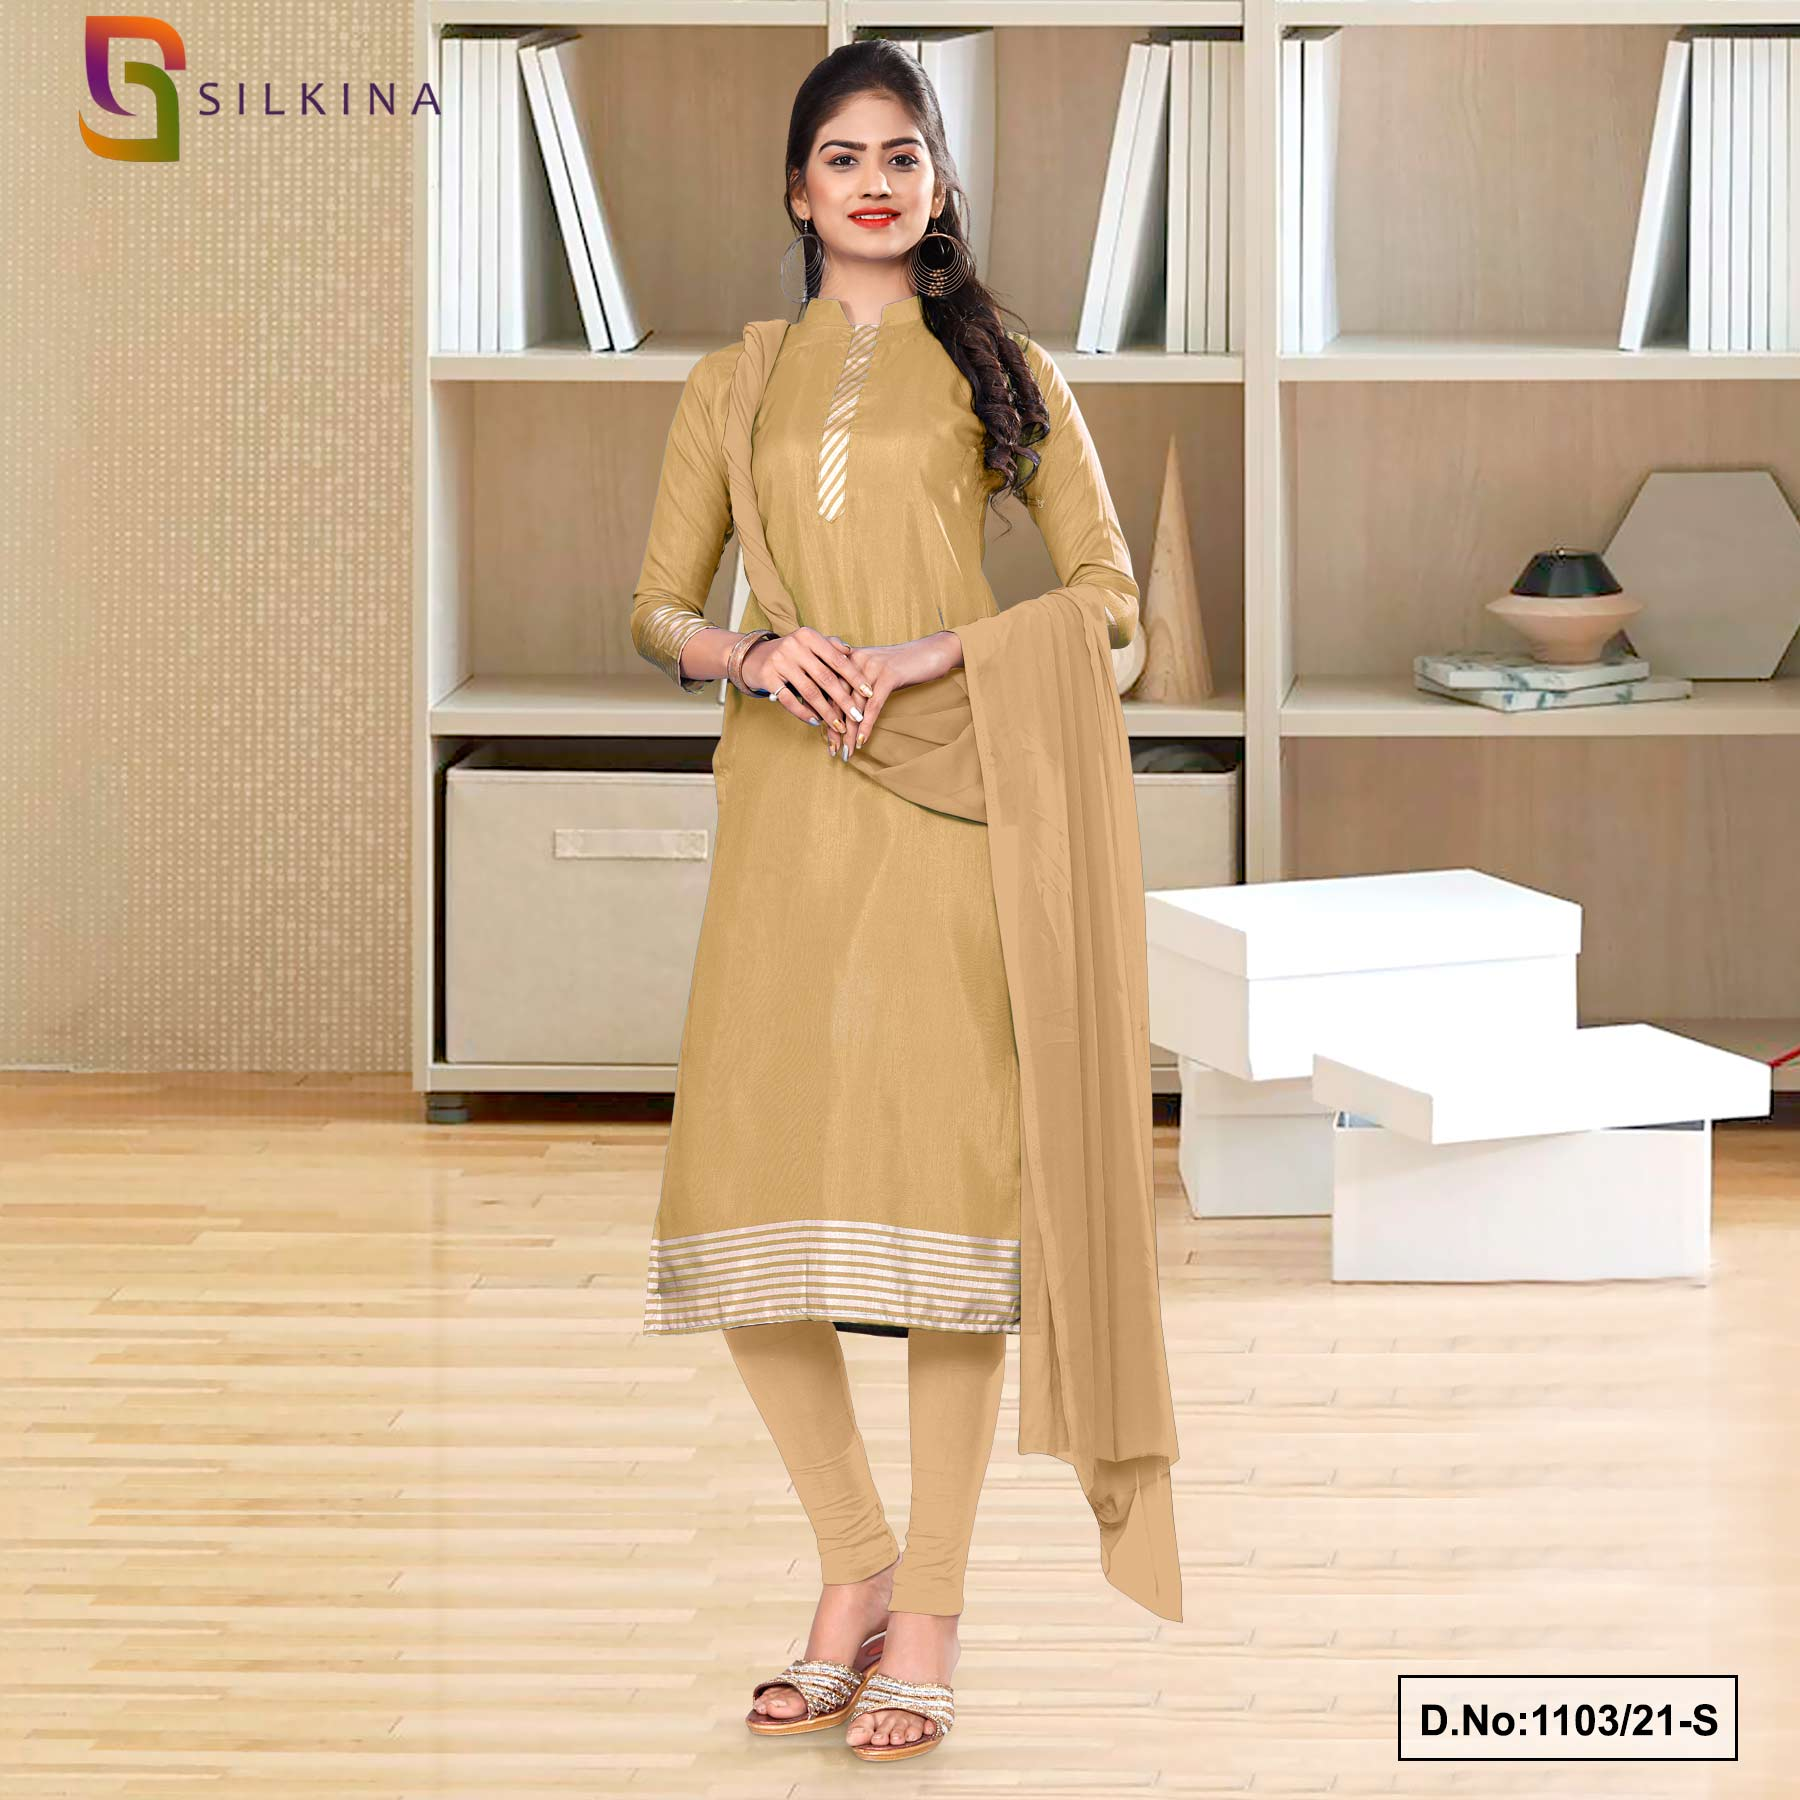 Beige Plain Border Premium Polycotton Raw Silk Salwar Kameez for Office Uniform Sarees